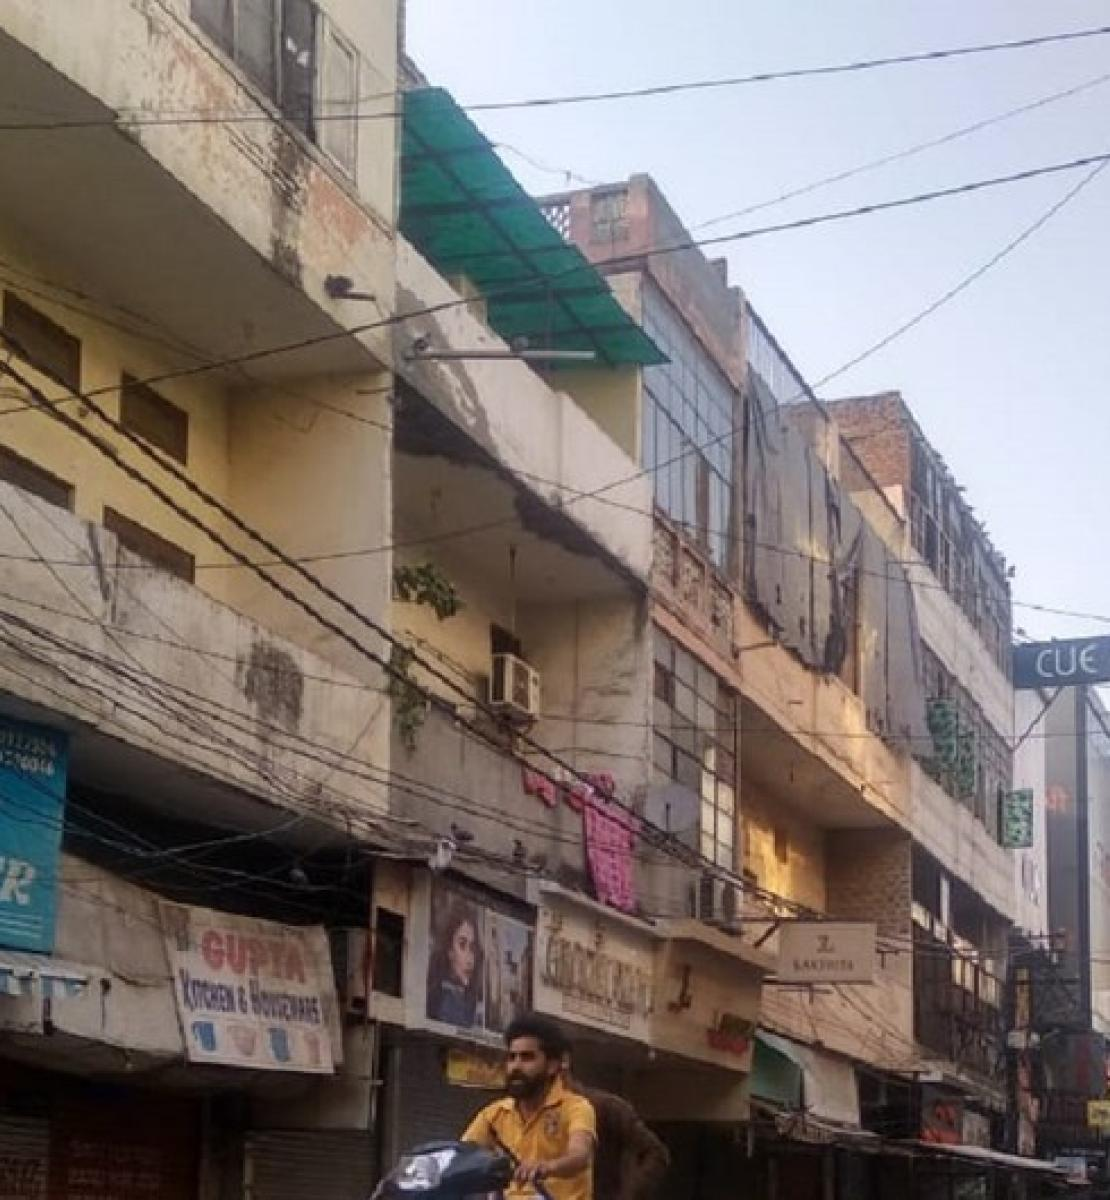 Shopkeepers have shuttered their stores in old Delhi, India following the government's announcement of a nationwide lockdown for 21 days to stem the spread of COVID-19.